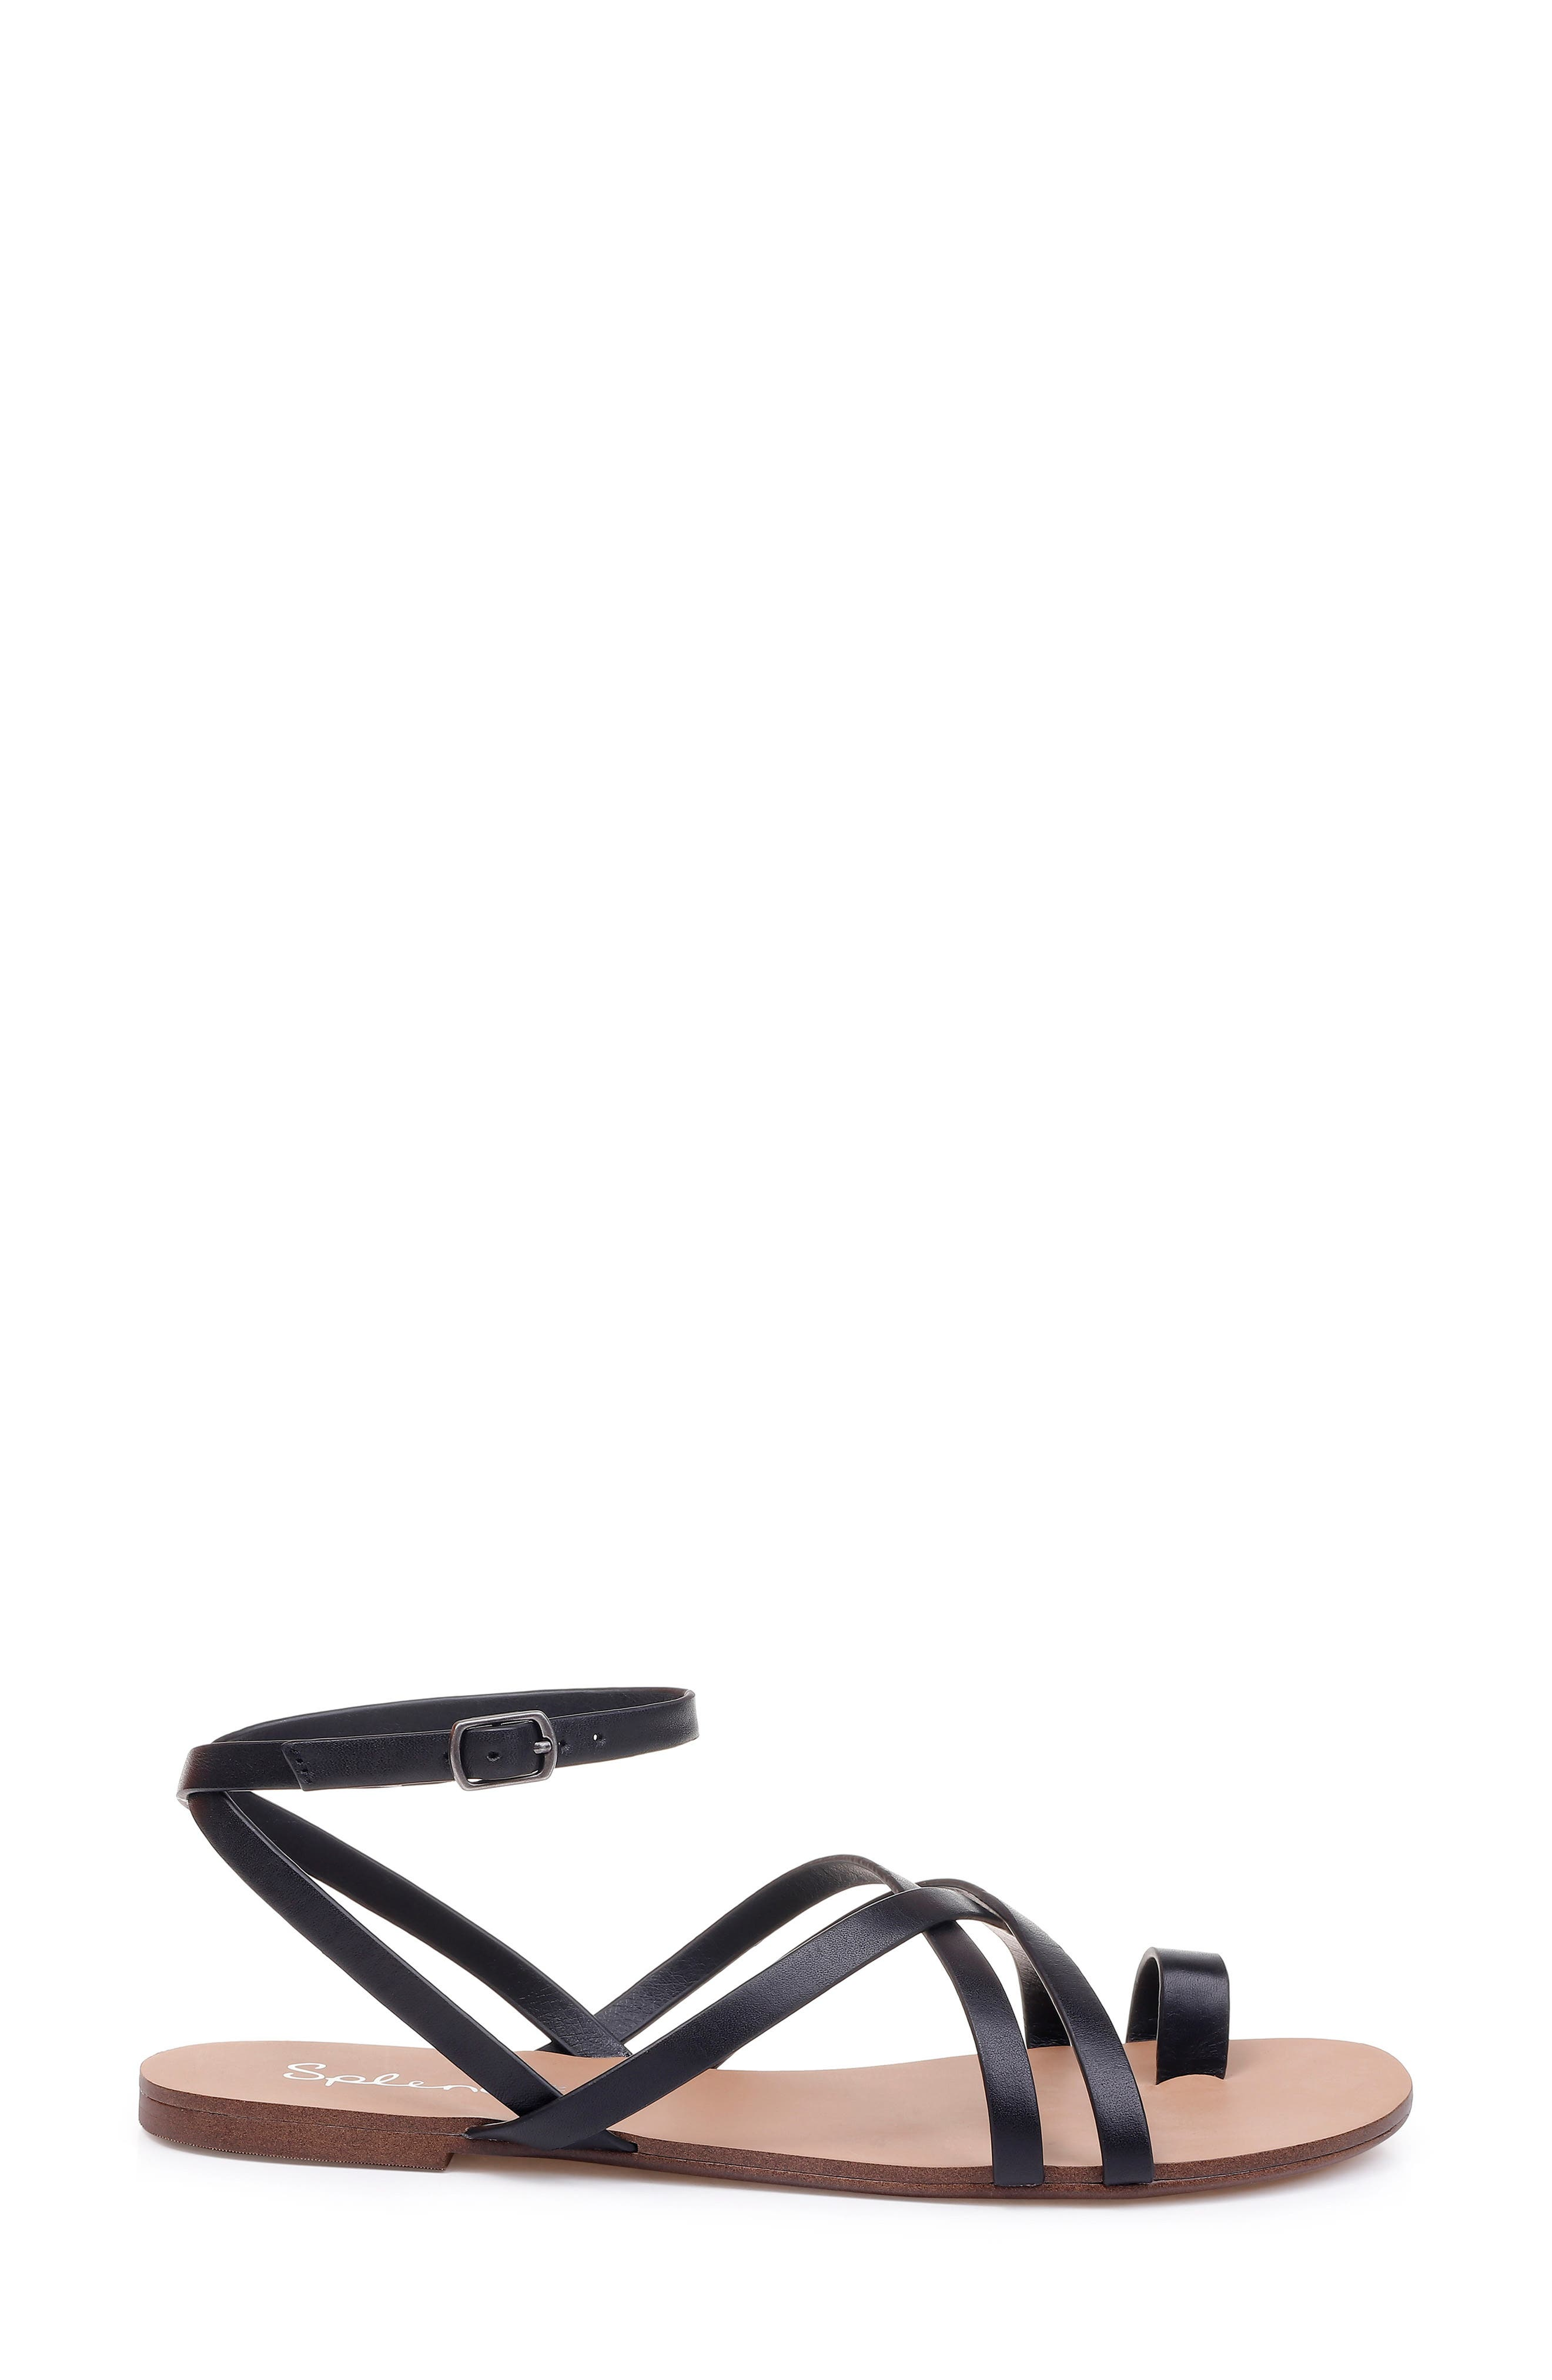 SPLENDID, Sully Strappy Toe Loop Sandal, Alternate thumbnail 3, color, BLACK LEATHER